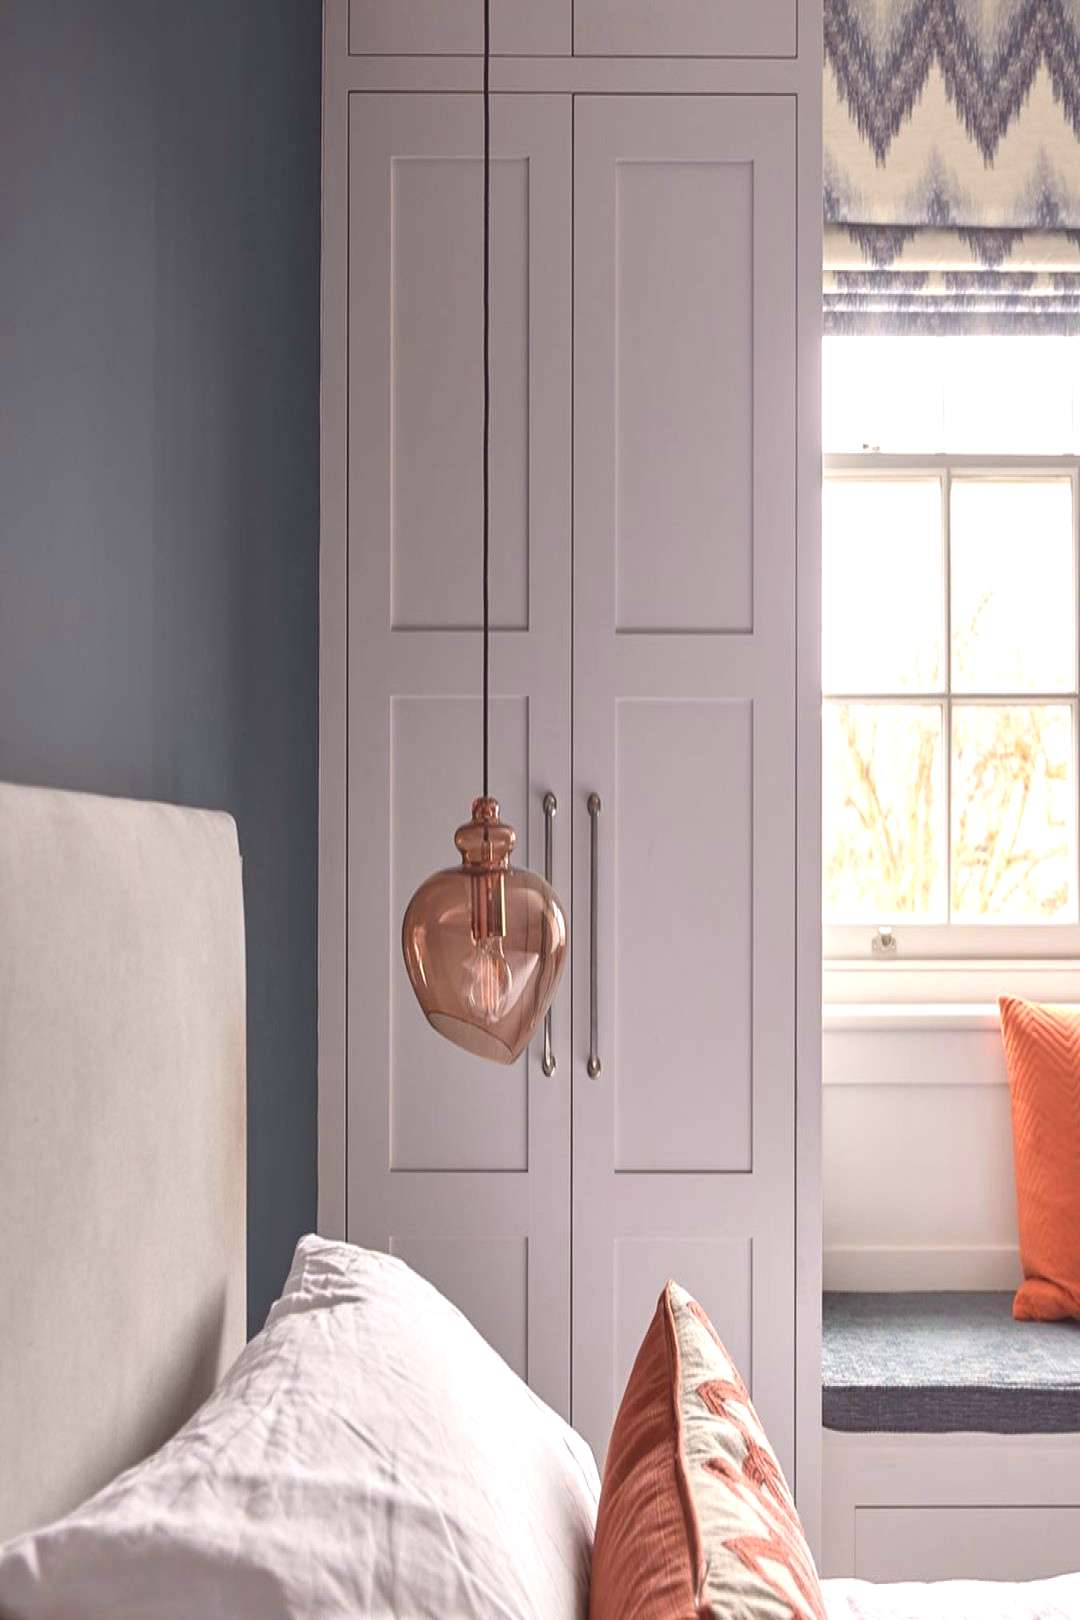 Bespoke fitted modern shaker-style wardrobes and a custom made wi